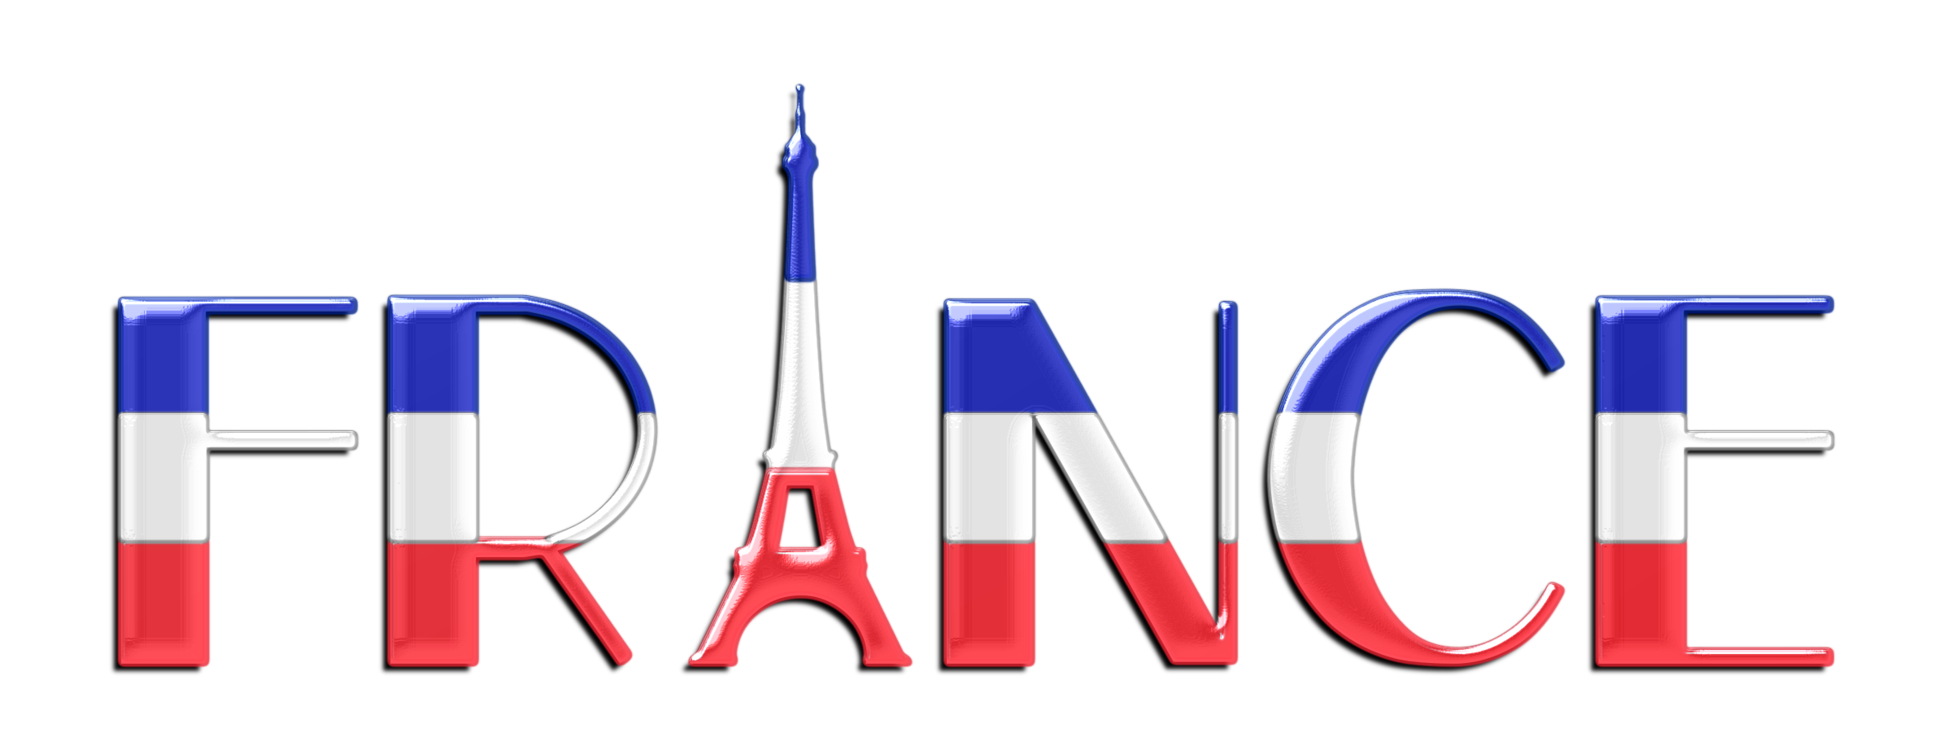 France clipart. National football team typography